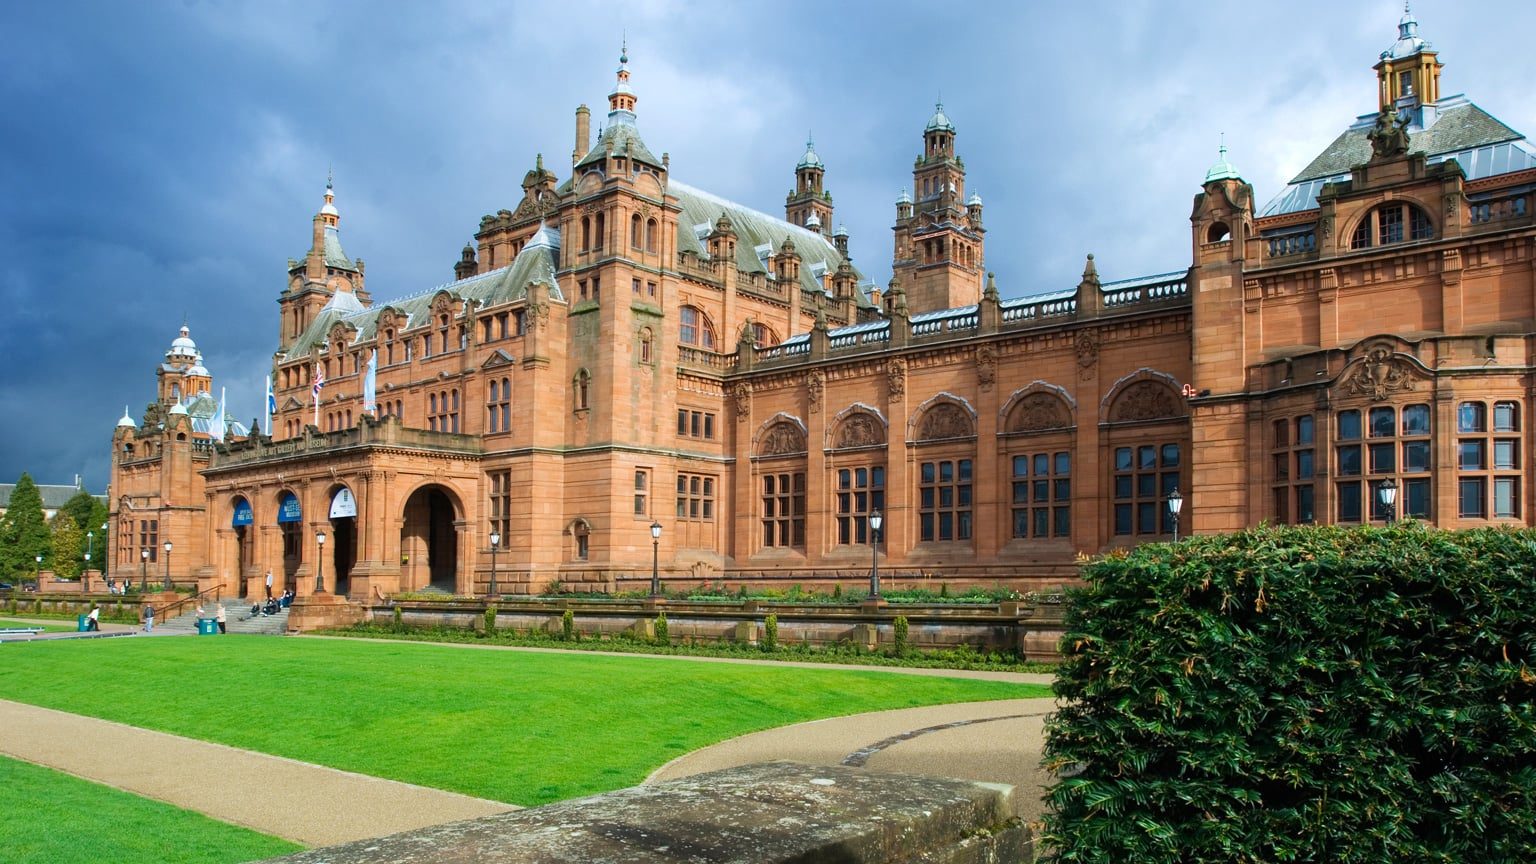 John W. Simpson and J.J. Milner Allen's Spanish Baroque building sits on the bank of the River Kelvin